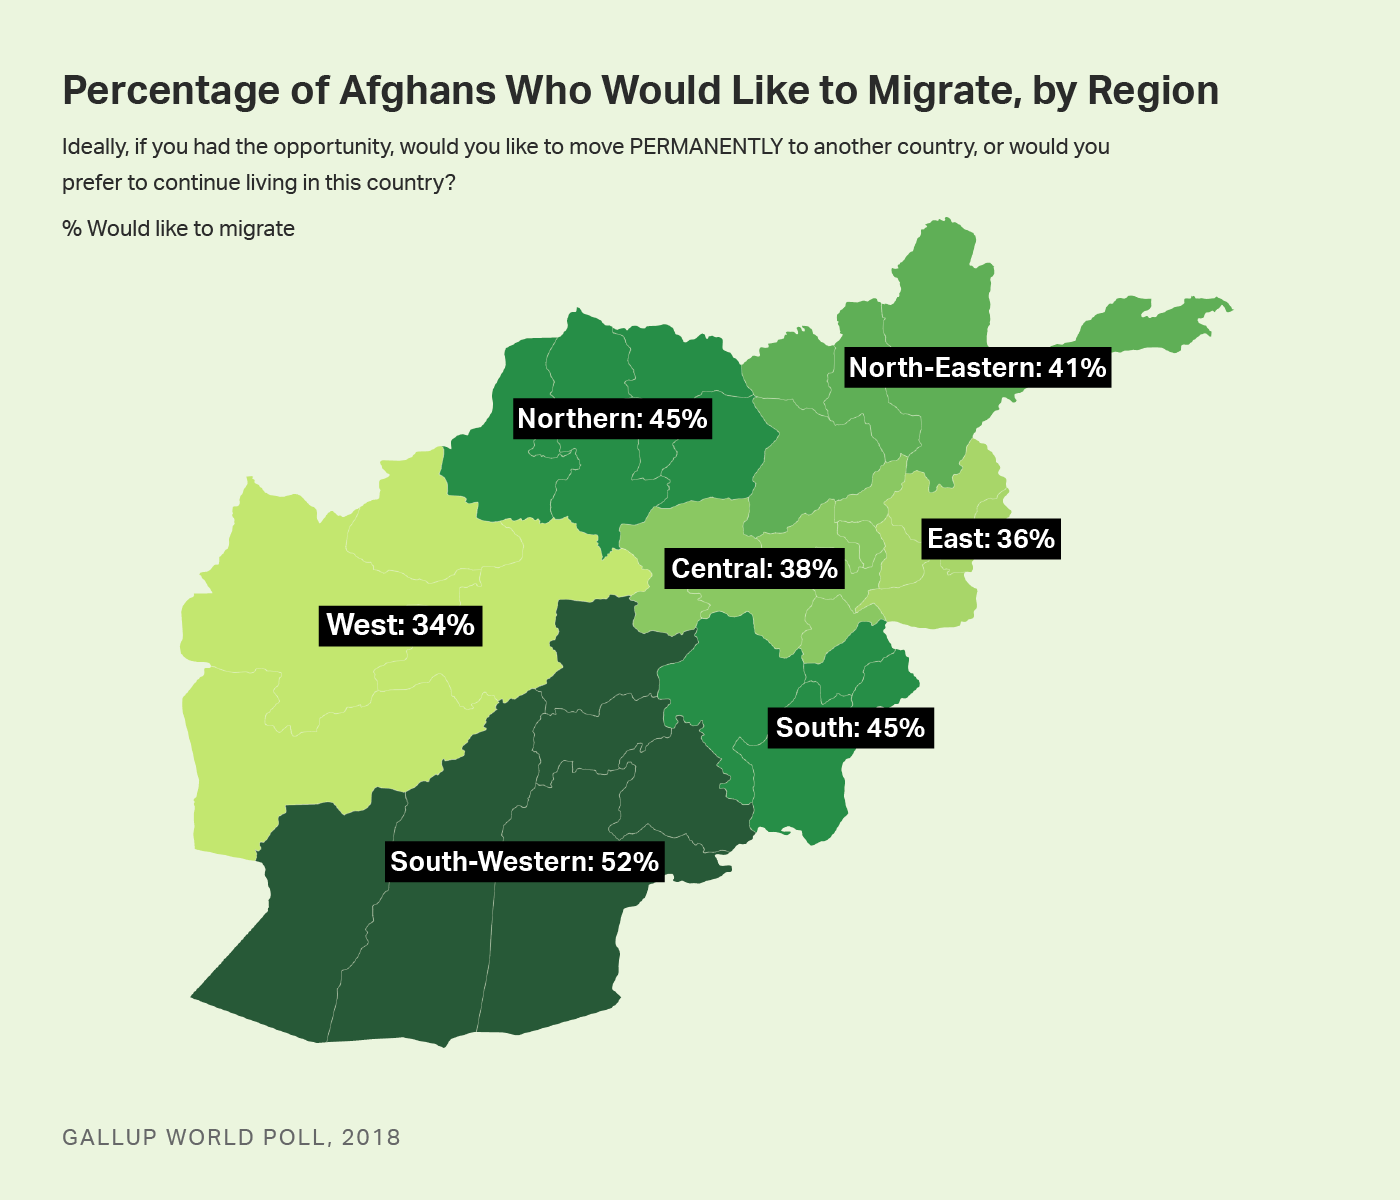 Heat map. Desire to migrate across major regions of Afghanistan.